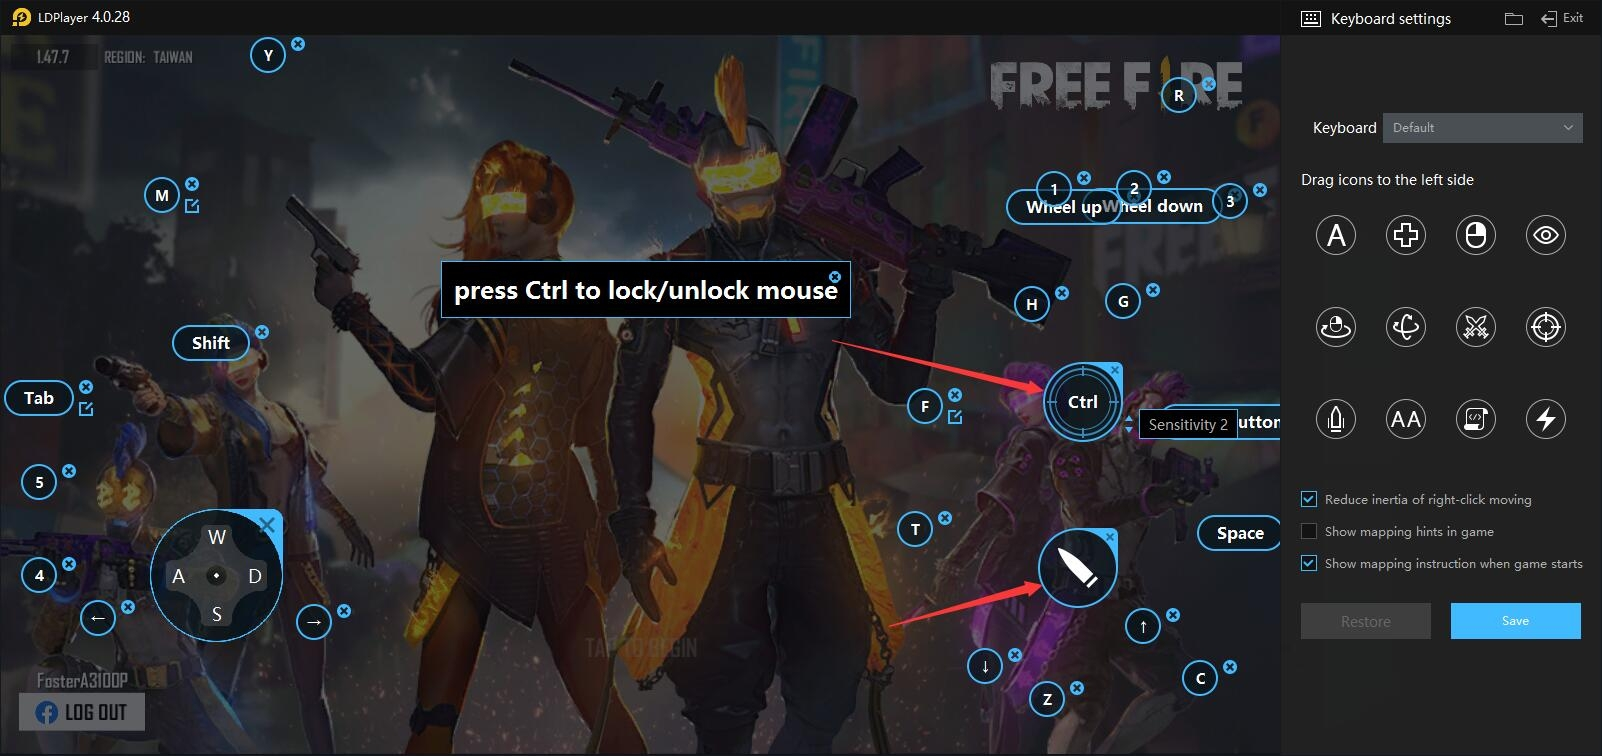 Fix problems with sensitivity and firing and changing view in Free Fire